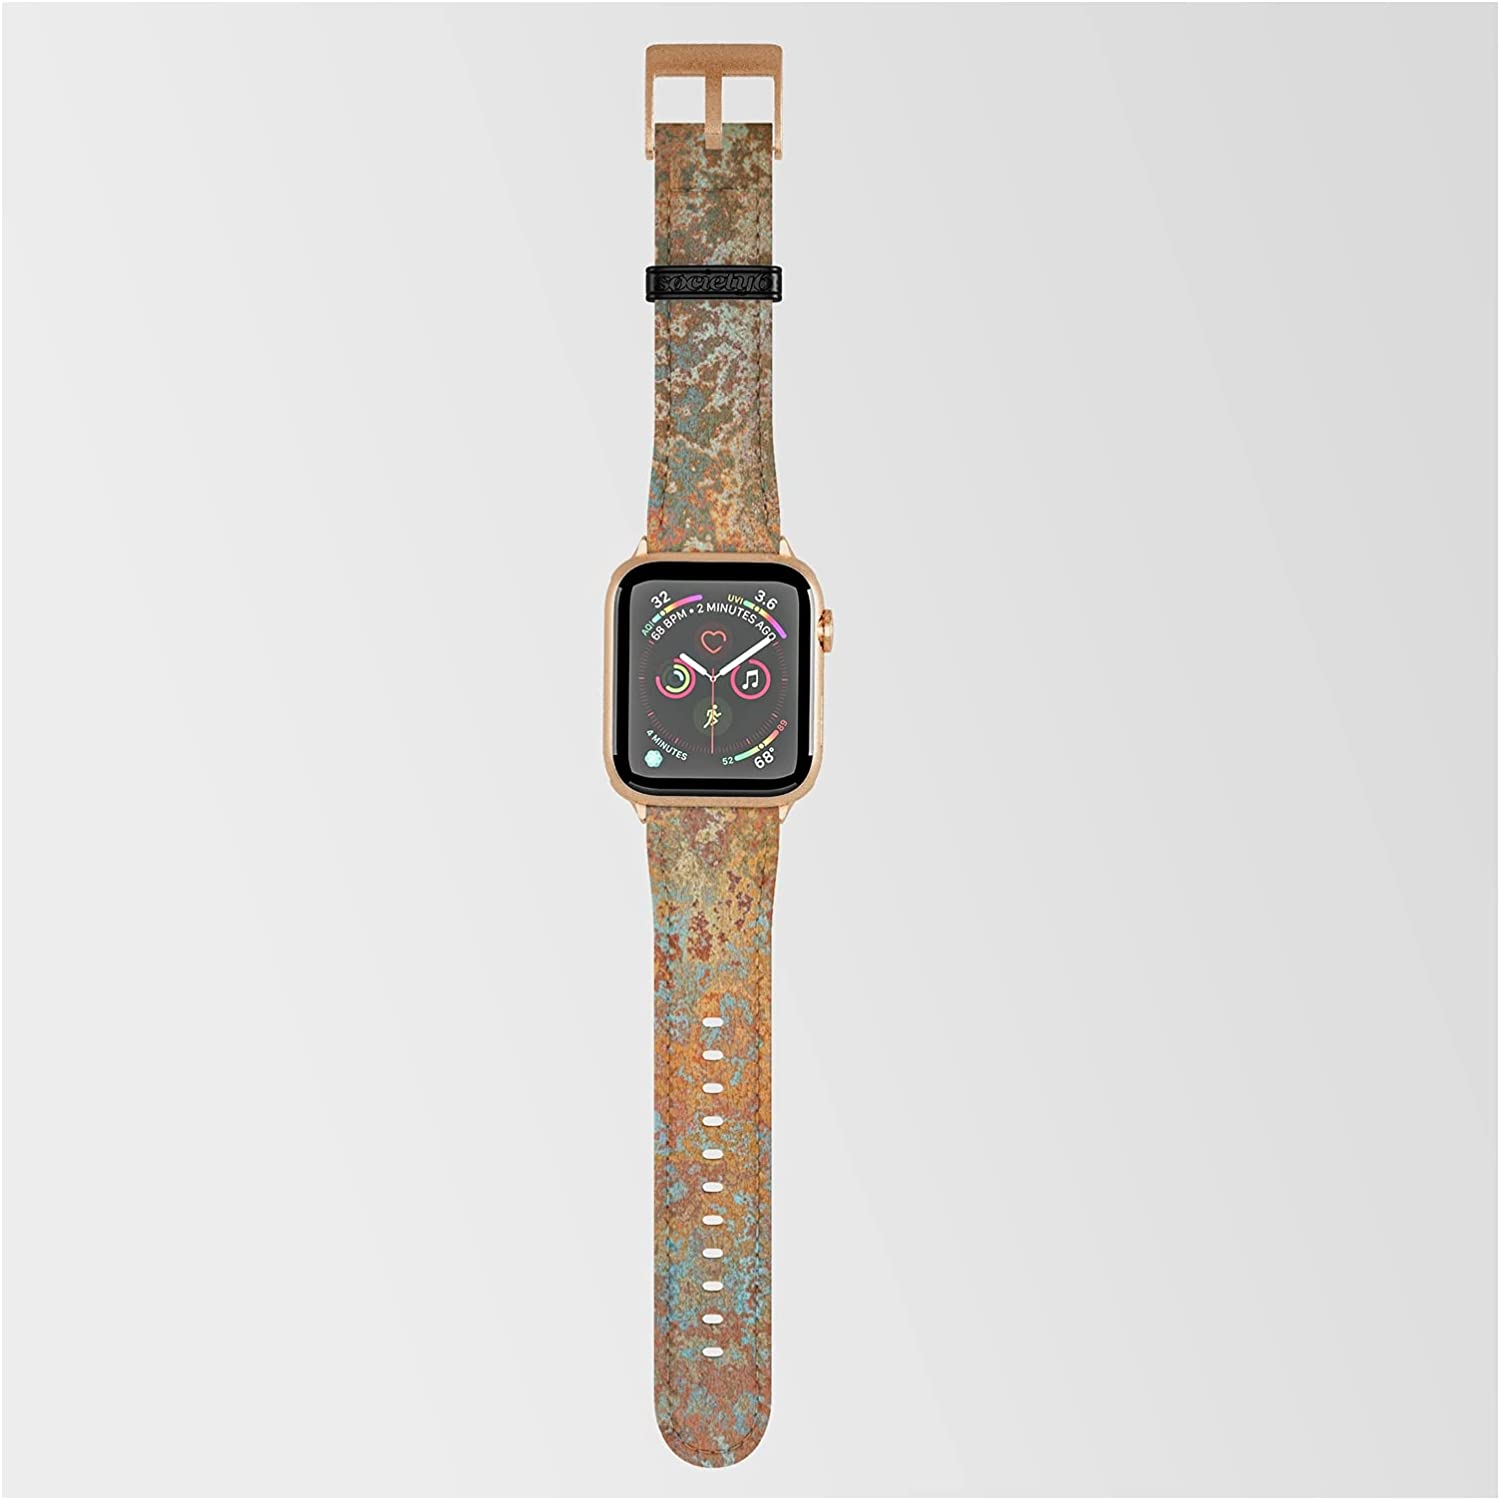 Vintage Rust Copper and Blue by Finally resale start Megan New products world's highest quality popular on Morris Smartwatch Band